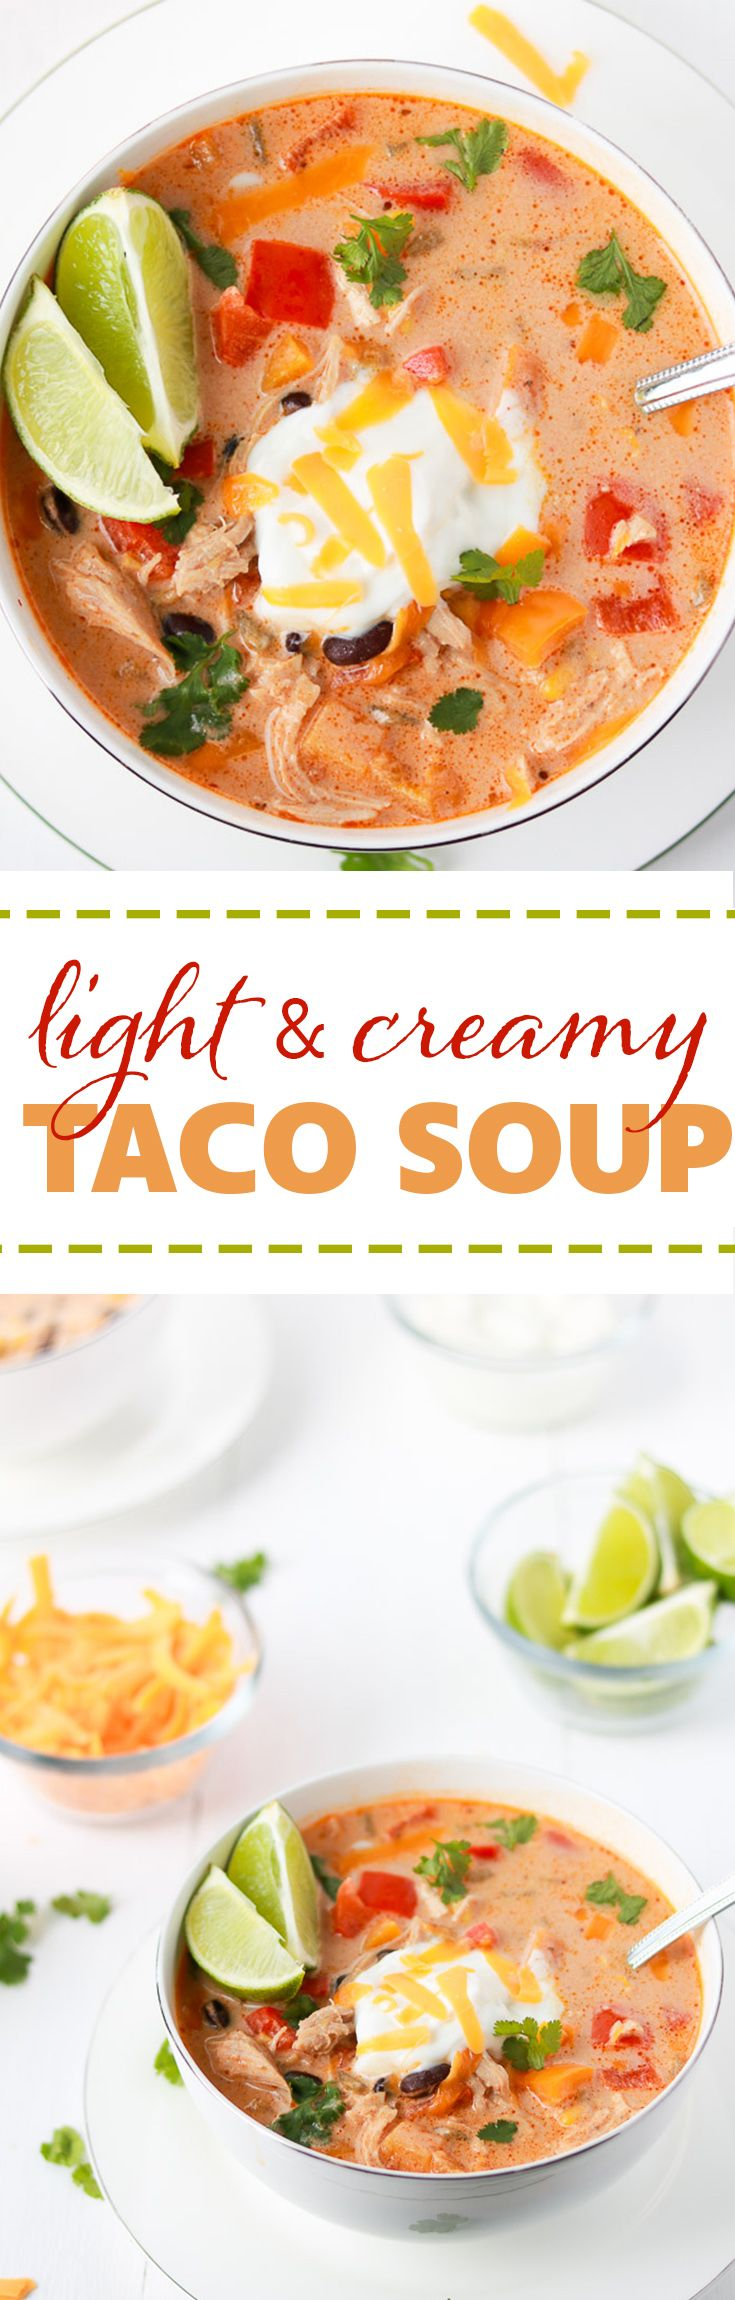 Light and Creamy Taco Soup | Deliciously creamy while still being light and healthy. It is packed with chicken, beans, corn, peppers and surrounded by an ultra smooth sauce. It is easy and quick to make and is delicious eaten immediately or reheated as leftovers.